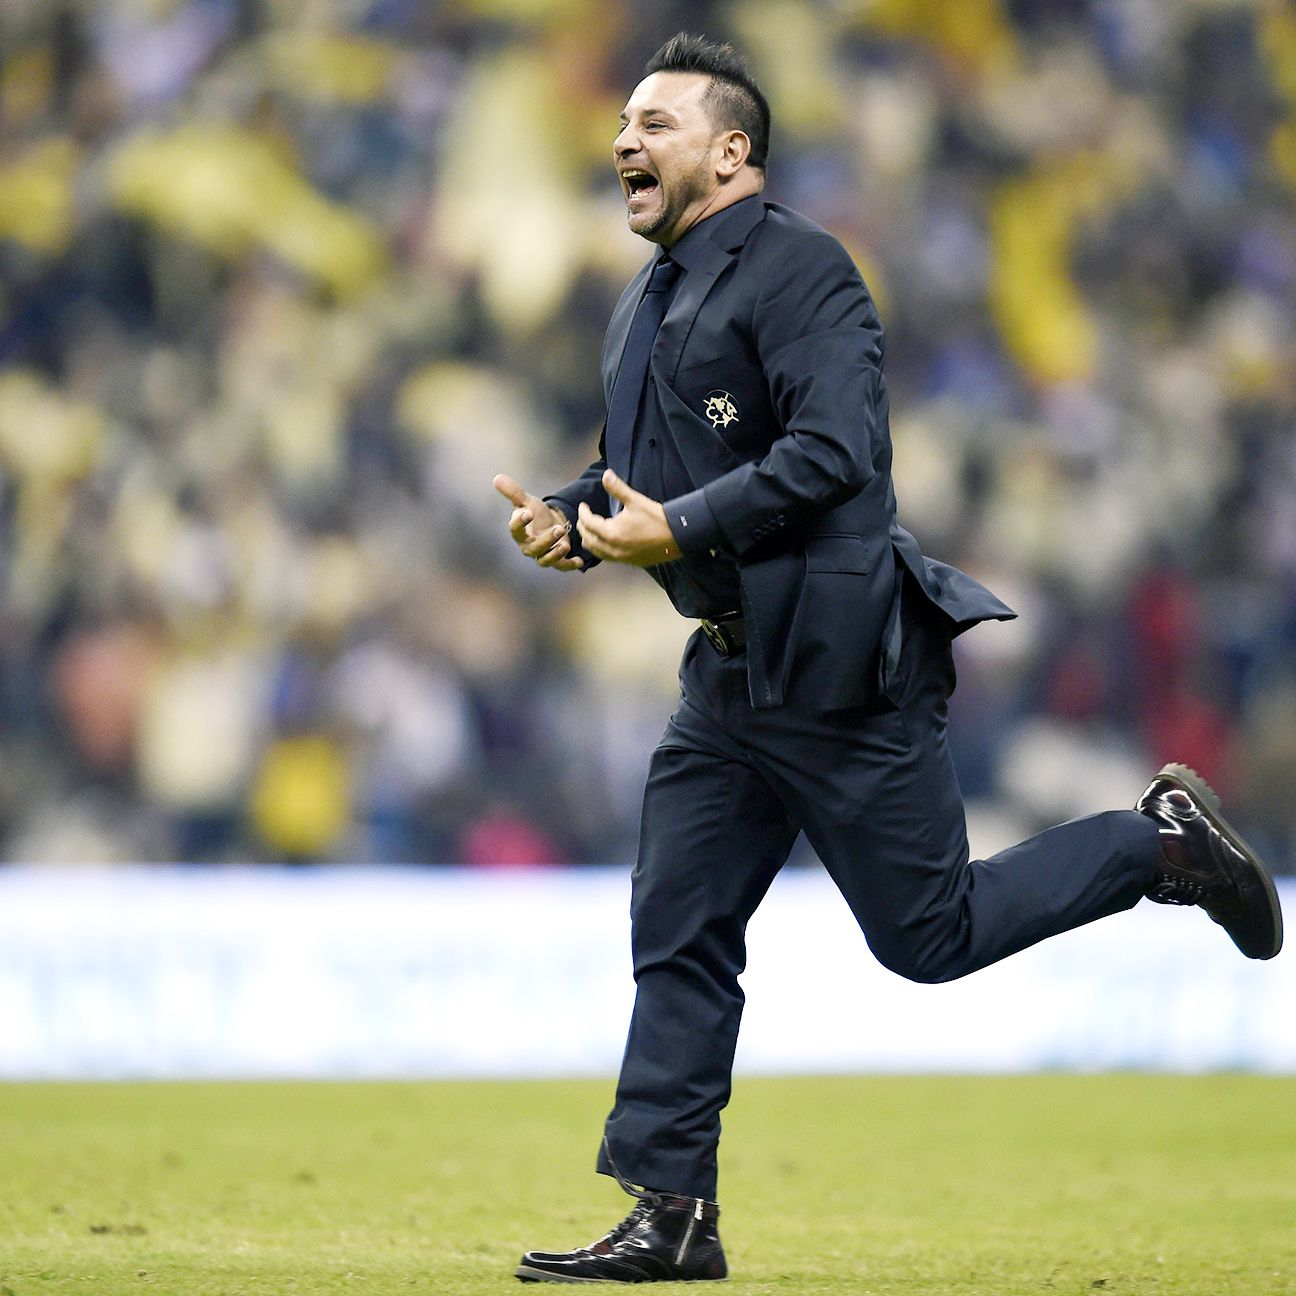 Antonio Mohamed's Club America have won only one of their previous six matches.